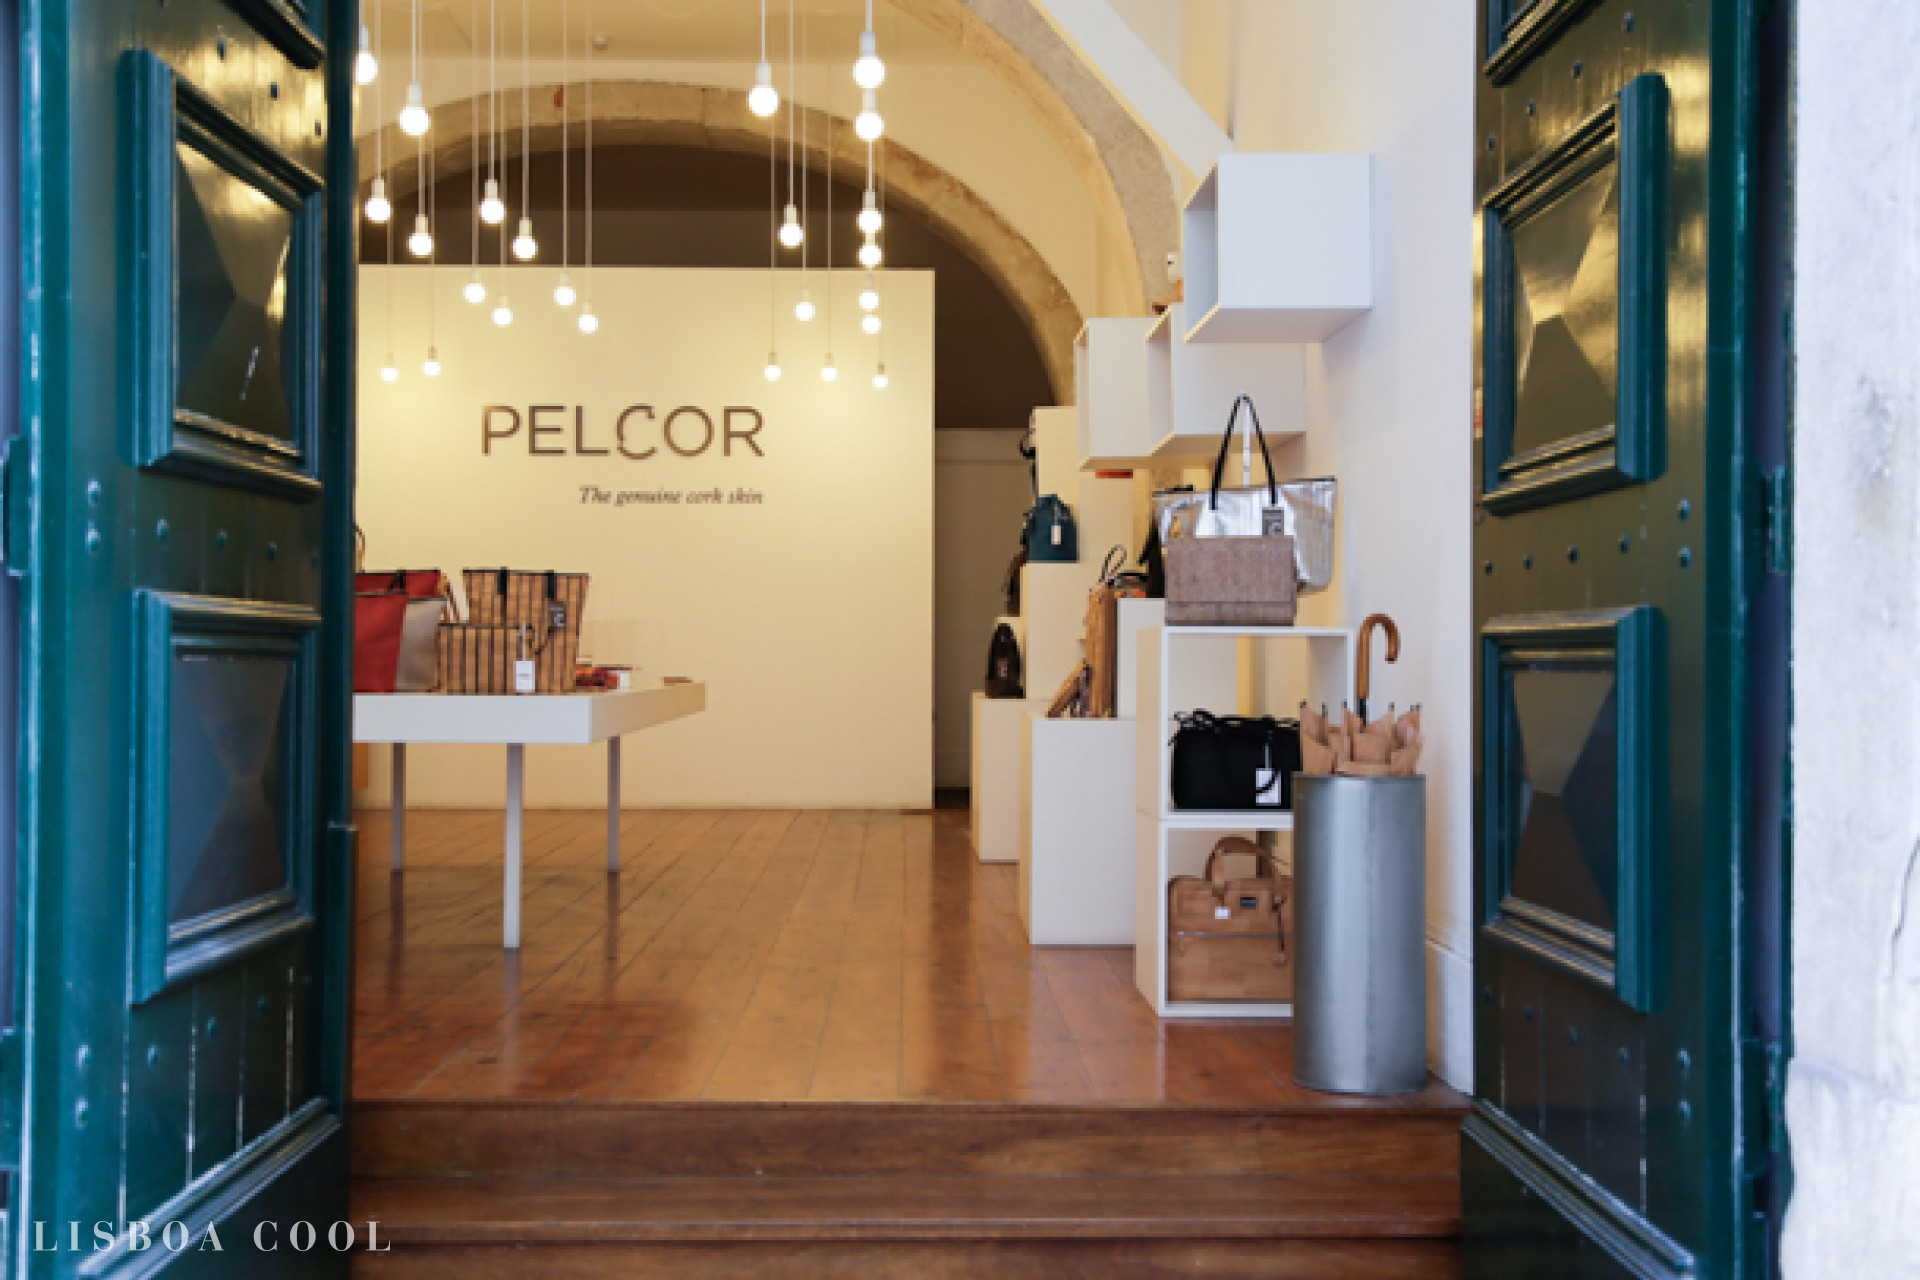 Pelcor Cork Lisbon - Design Lovers Guide to Portugal: Things to Do In Portugal for Architecture, Art & Design Lovers - best shopping in portugal - best design stores in portugal - best furniture stores in portugal - cork in portugal